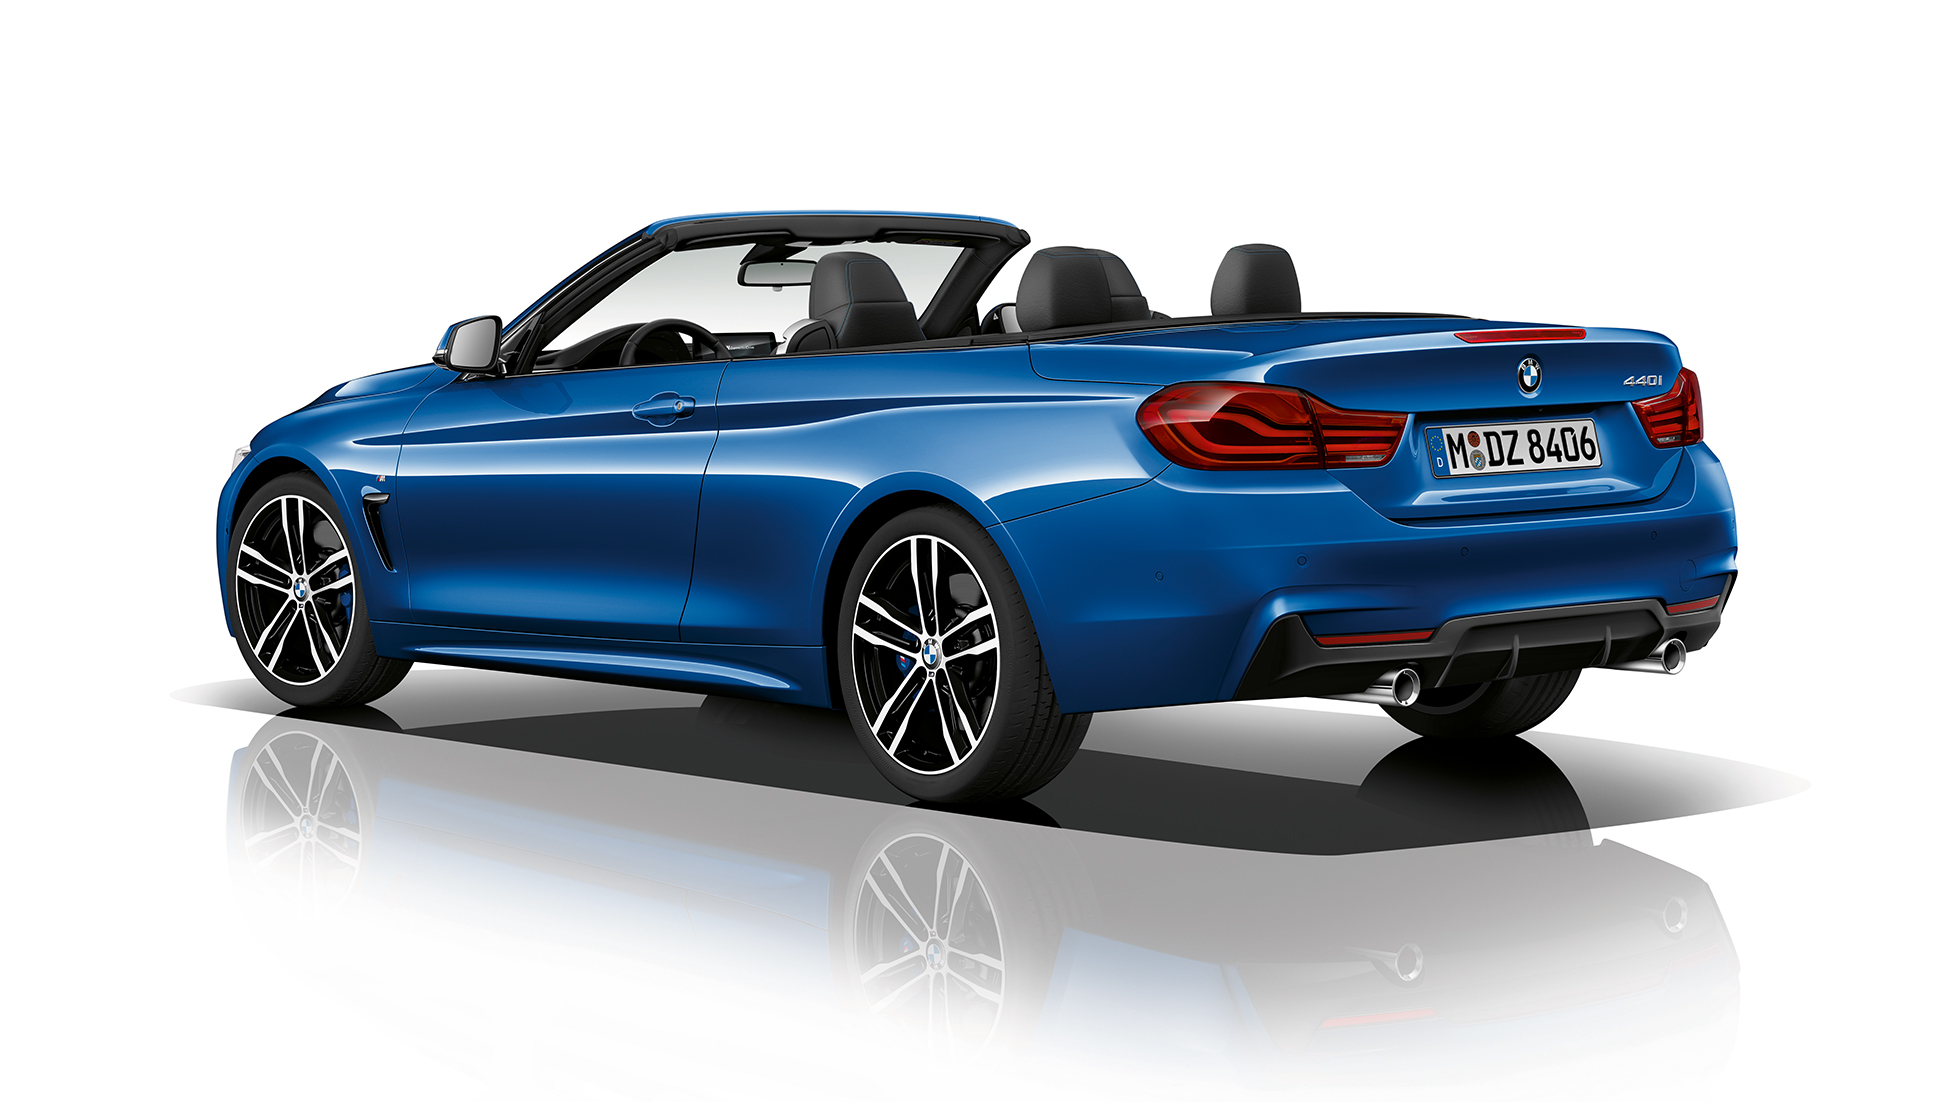 BMW 4 Series Convertible, Model M Sport three-quarter rear shot